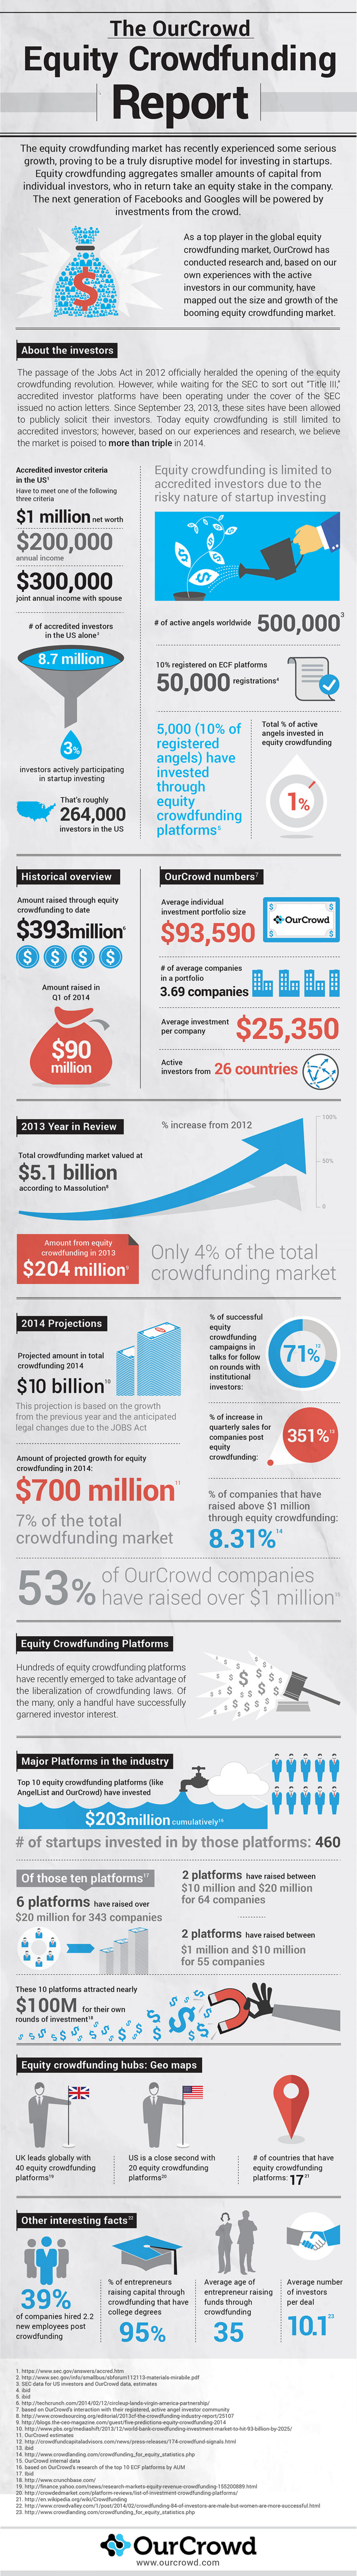 The OurCrowd Equity Crowdfunding Report (2014) Infographic